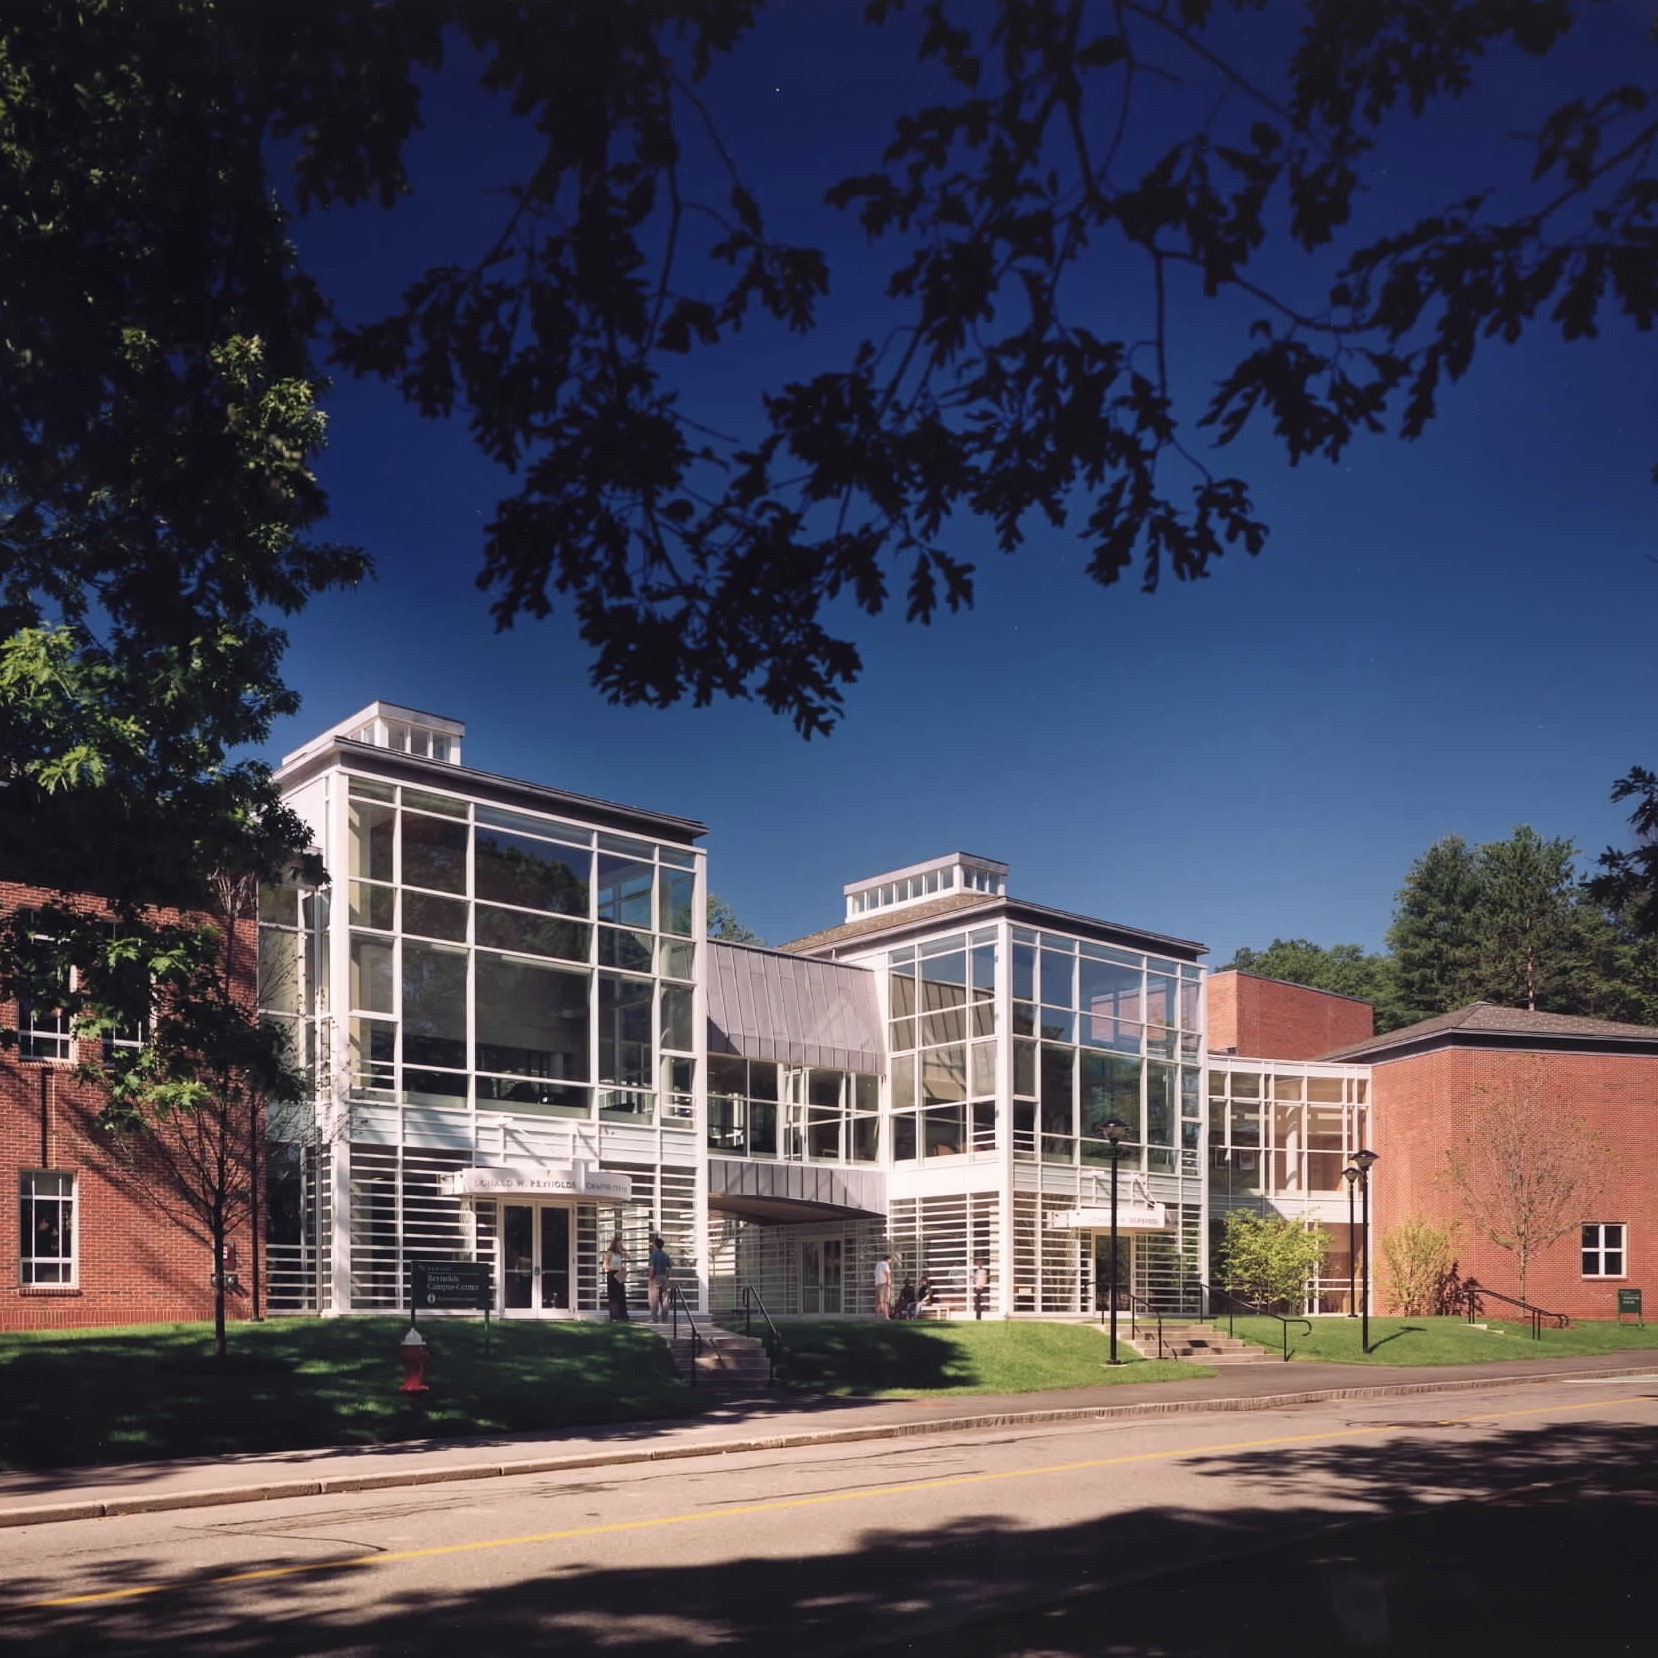 Reynolds-Campus-Center-Alan-Joslin-01.jpg